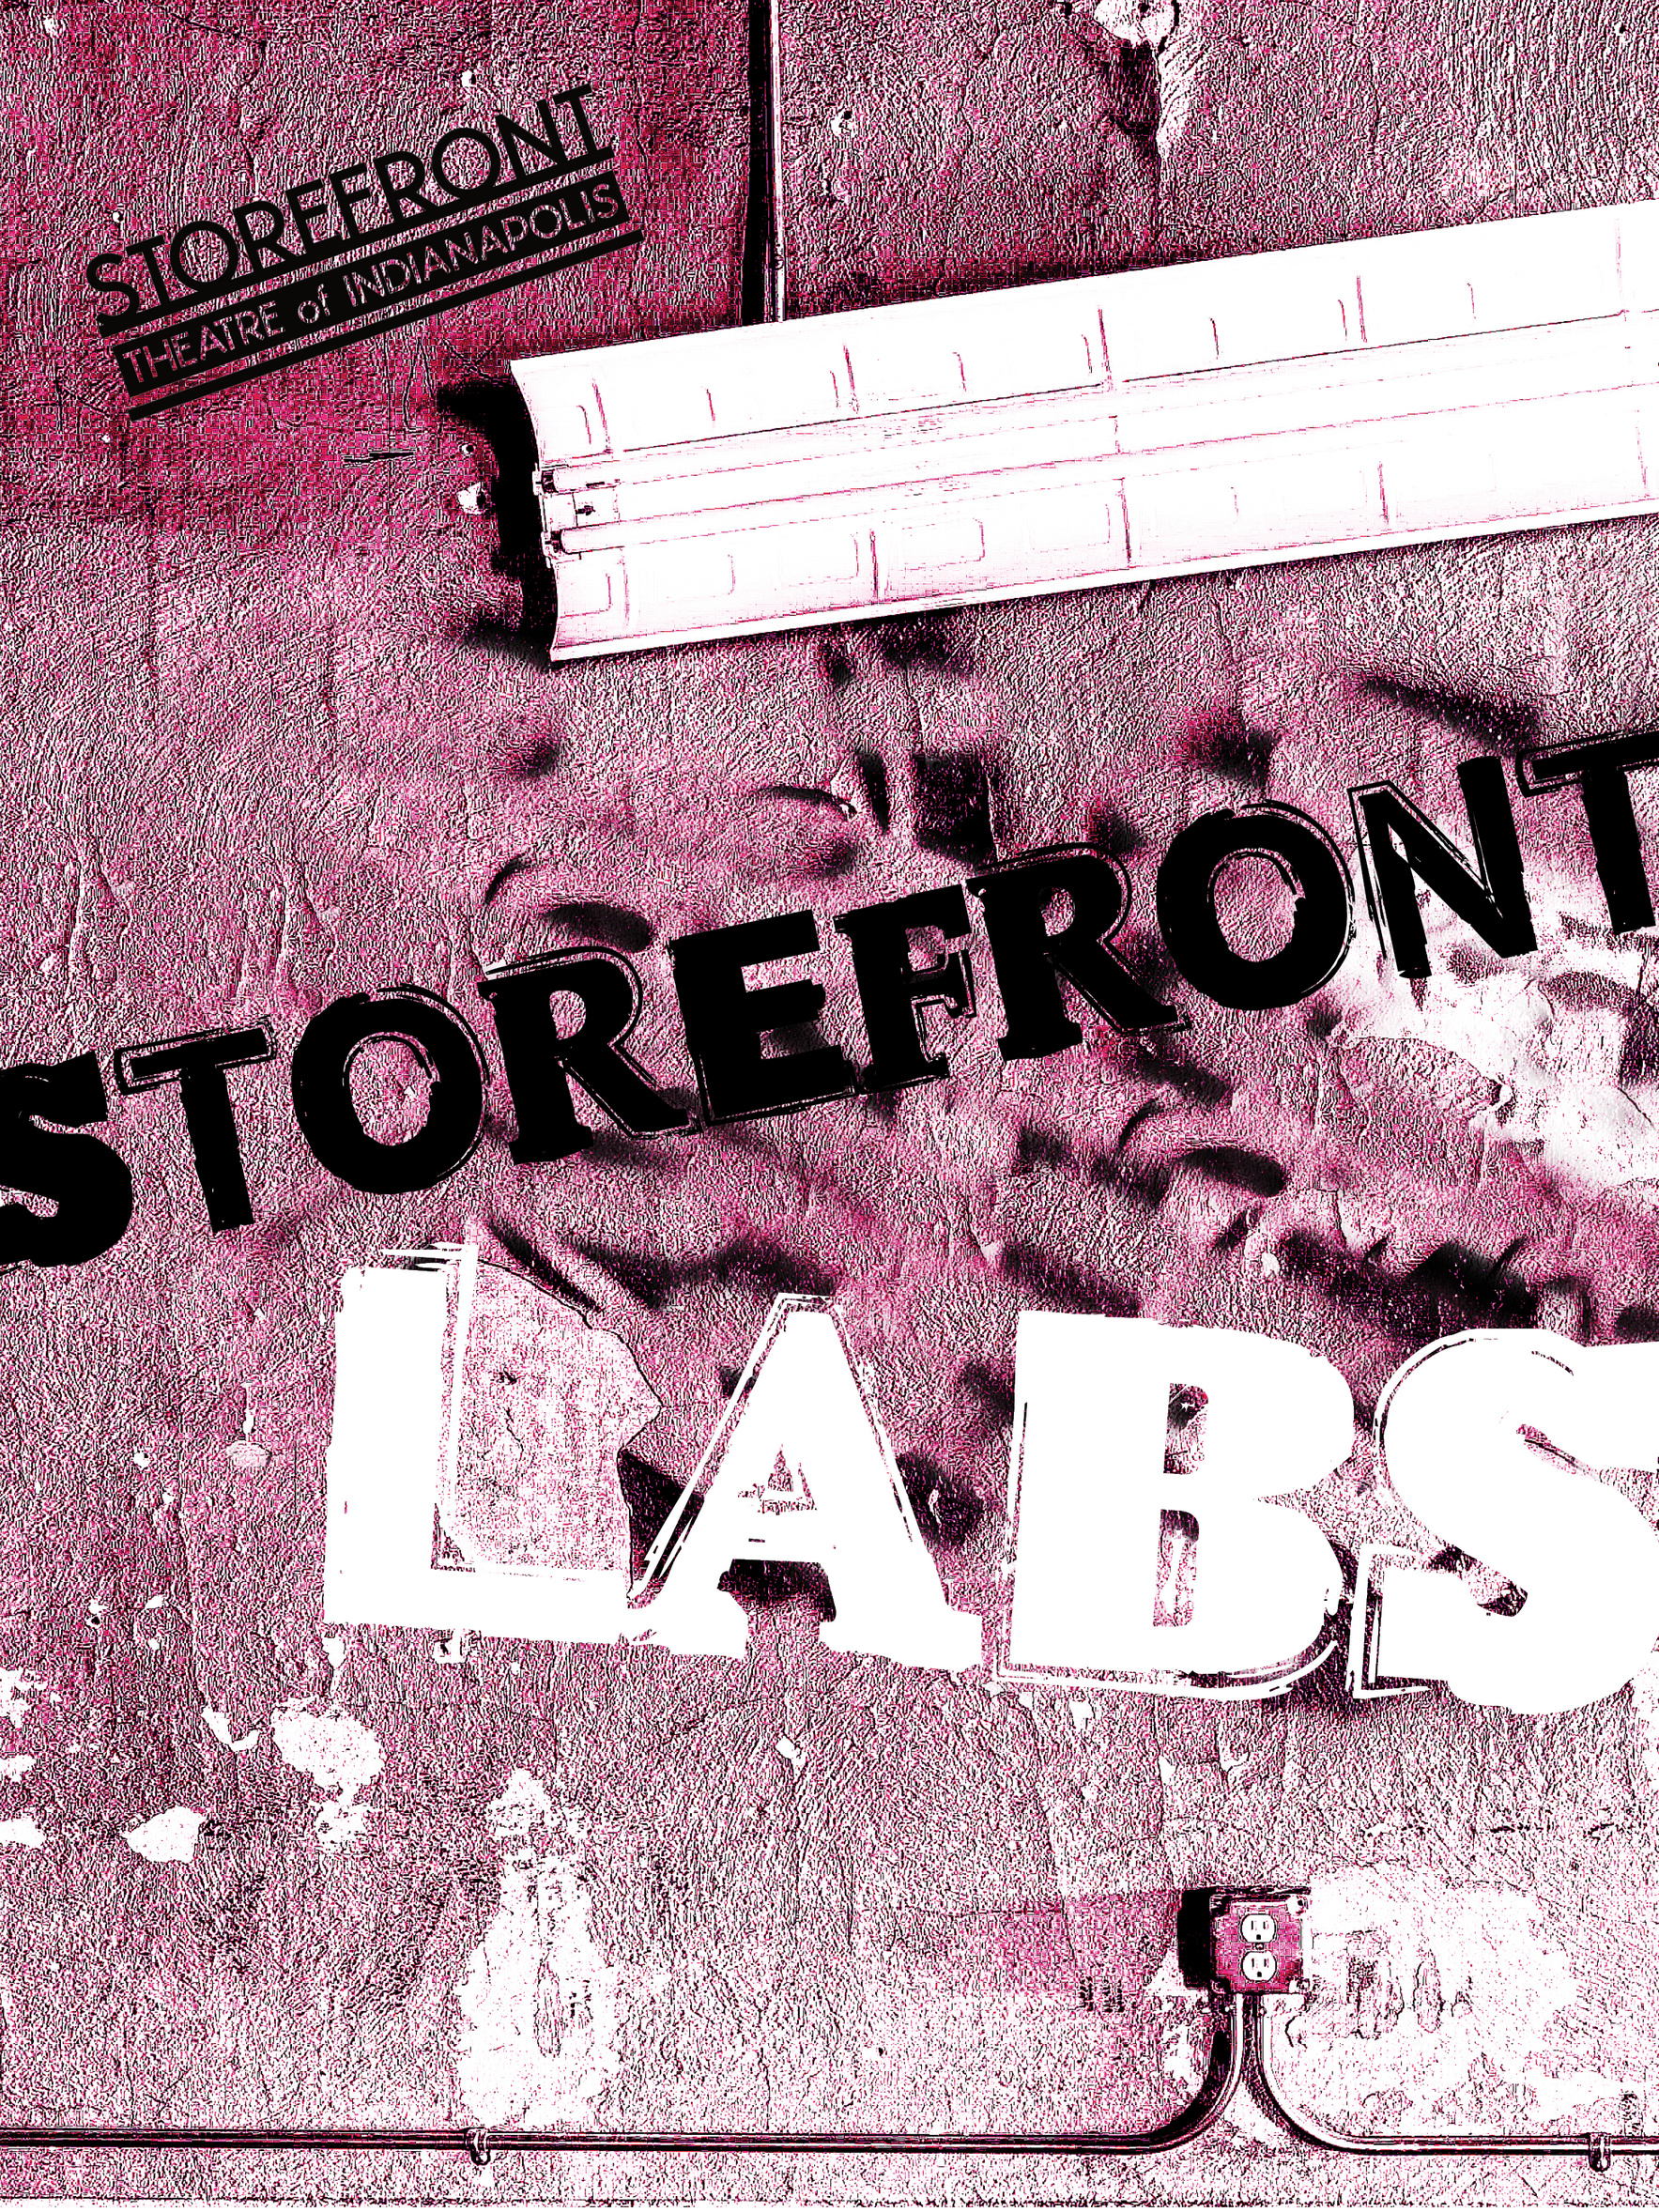 Storefront Labs Mixer-That's-Not-A-Mixer image